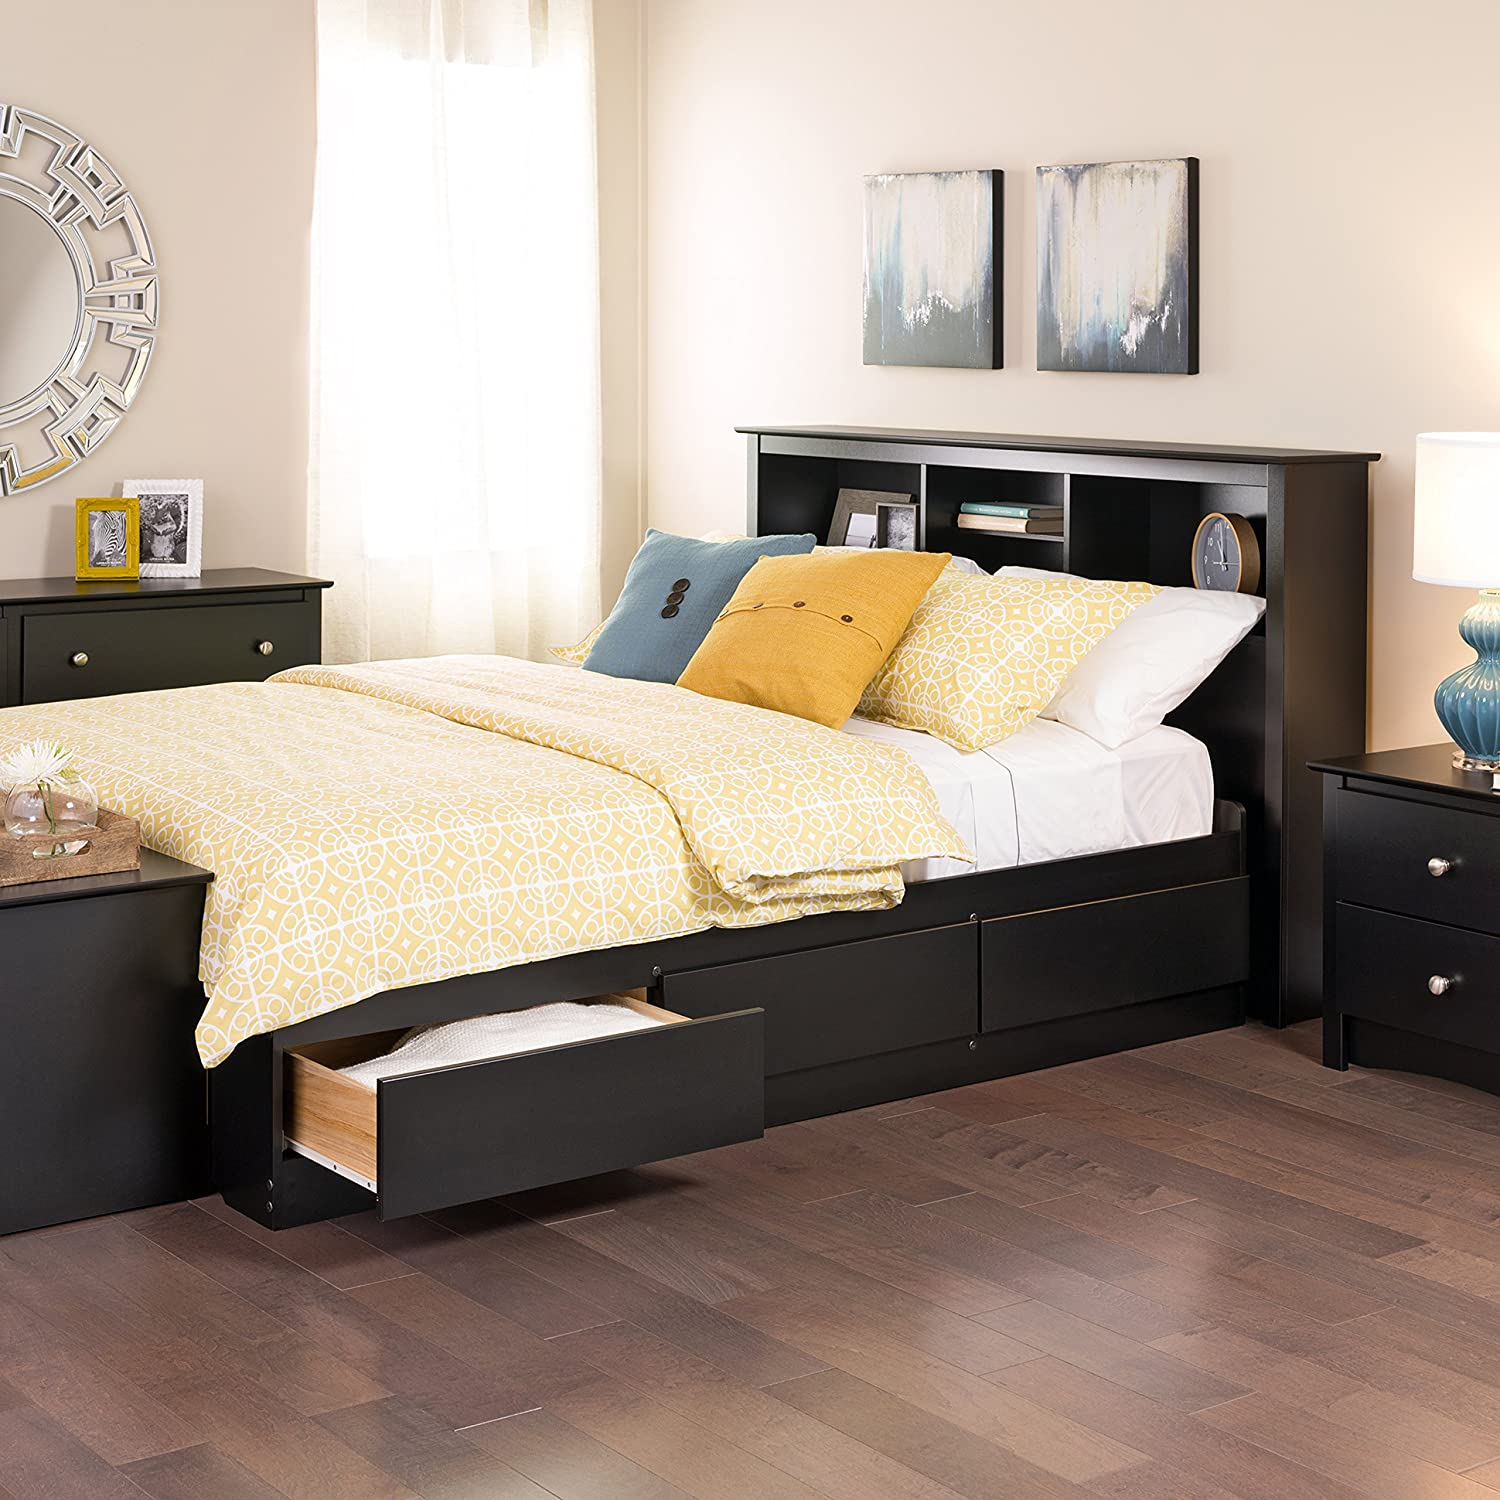 Victorian king storage beds with drawers - Black Full Mate S Platform Storage Bed With 6 Drawers